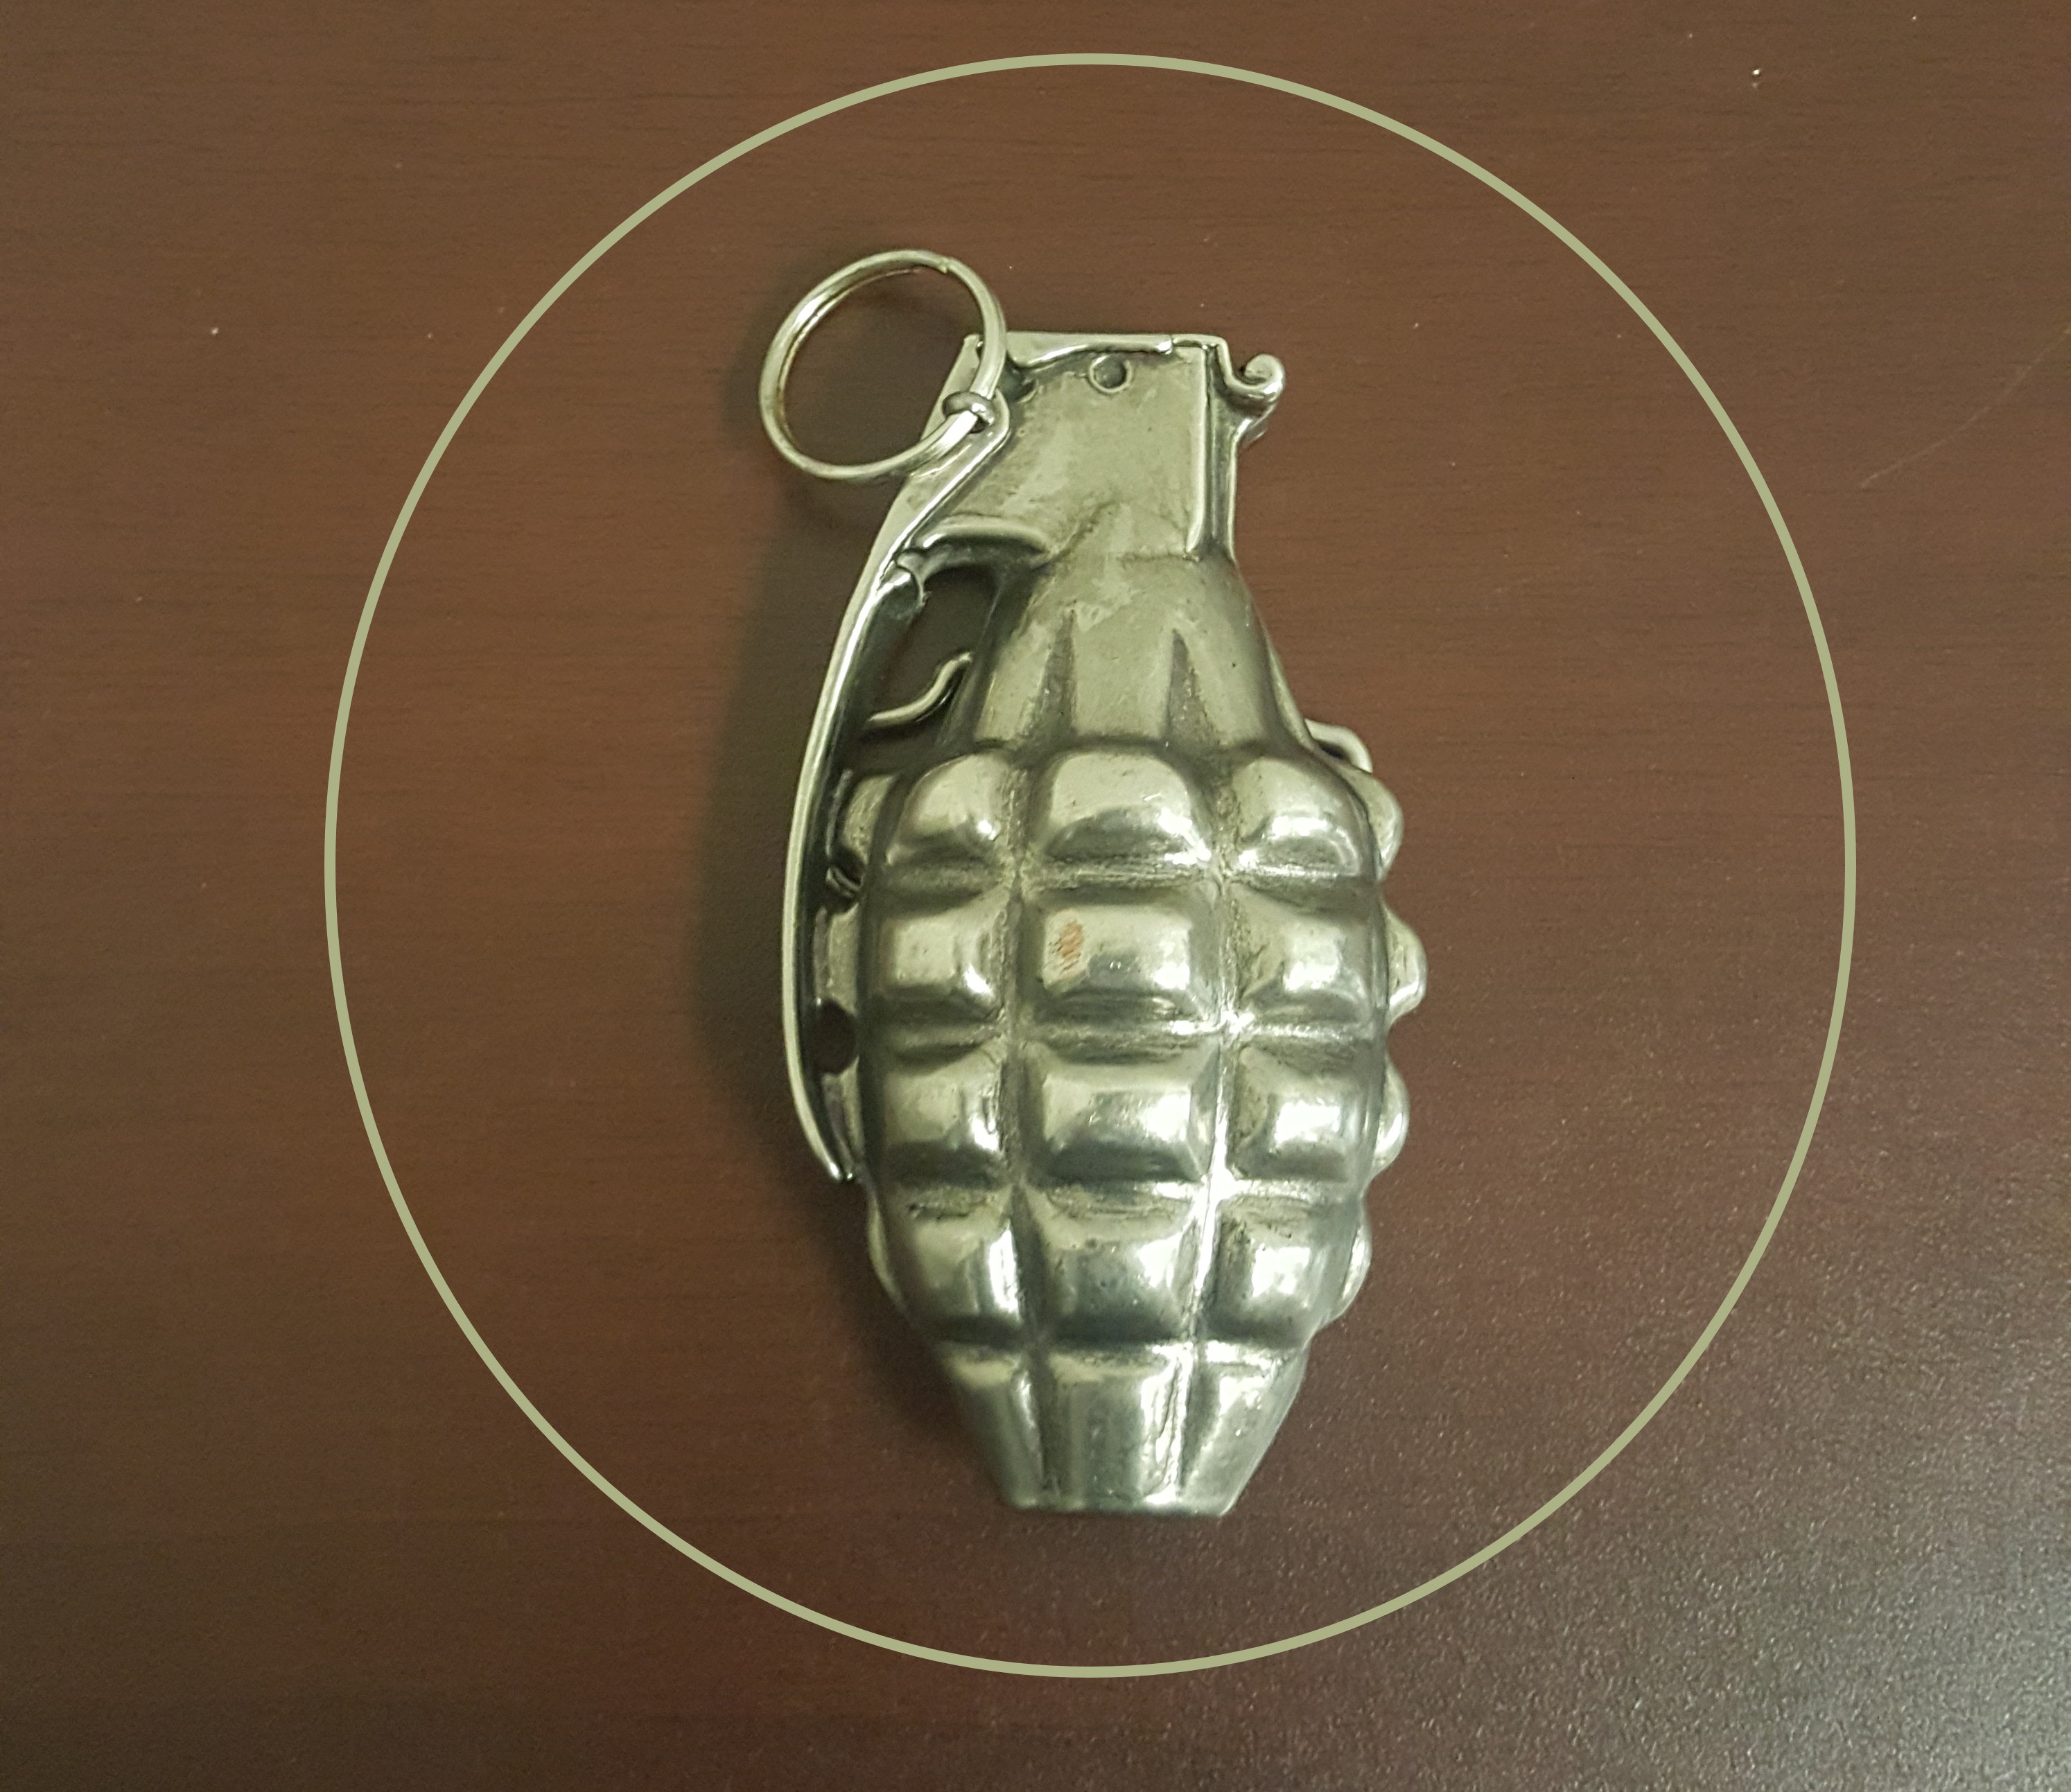 This is an image of a belt buckle in the shape of a hand grenade